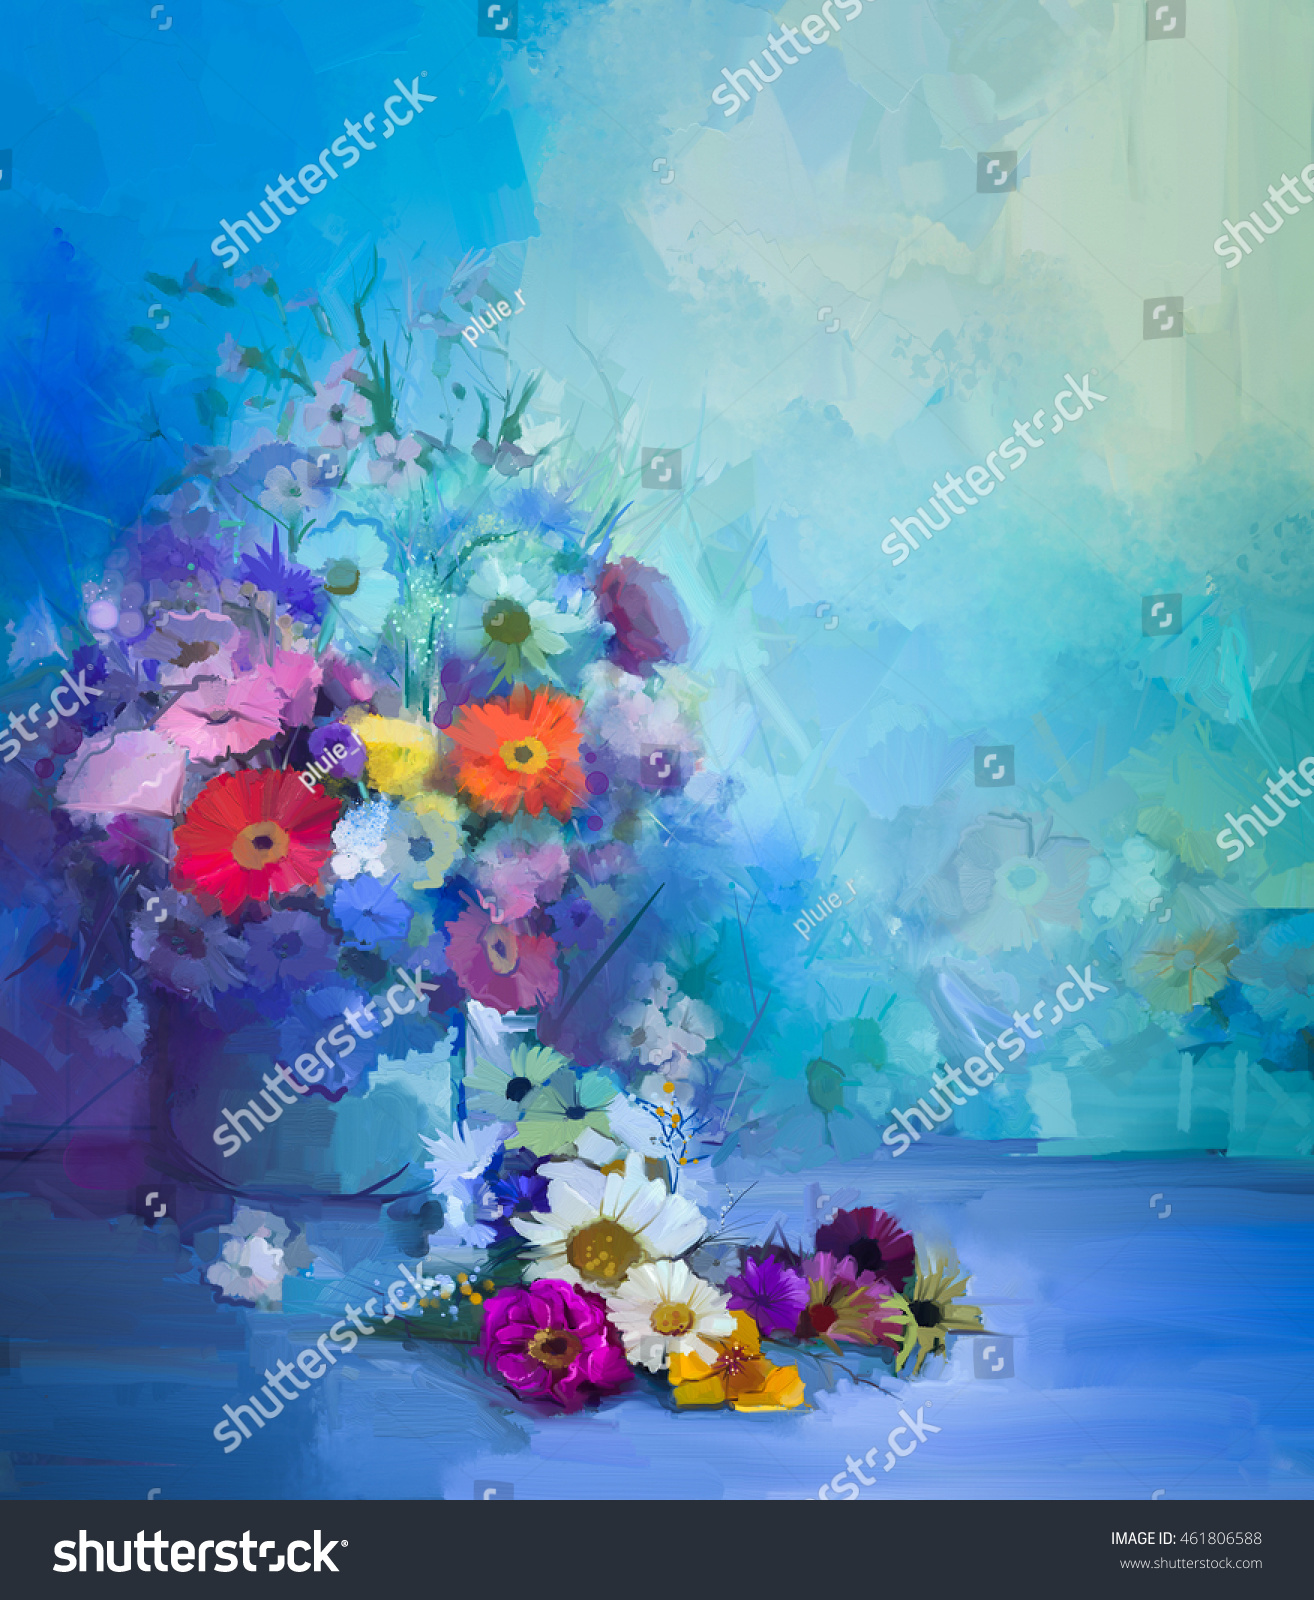 Oil painting flowers vase hand paint stock illustration 461806588 oil painting flowers in vase hand paint still life bouquet of whiteyellow and izmirmasajfo